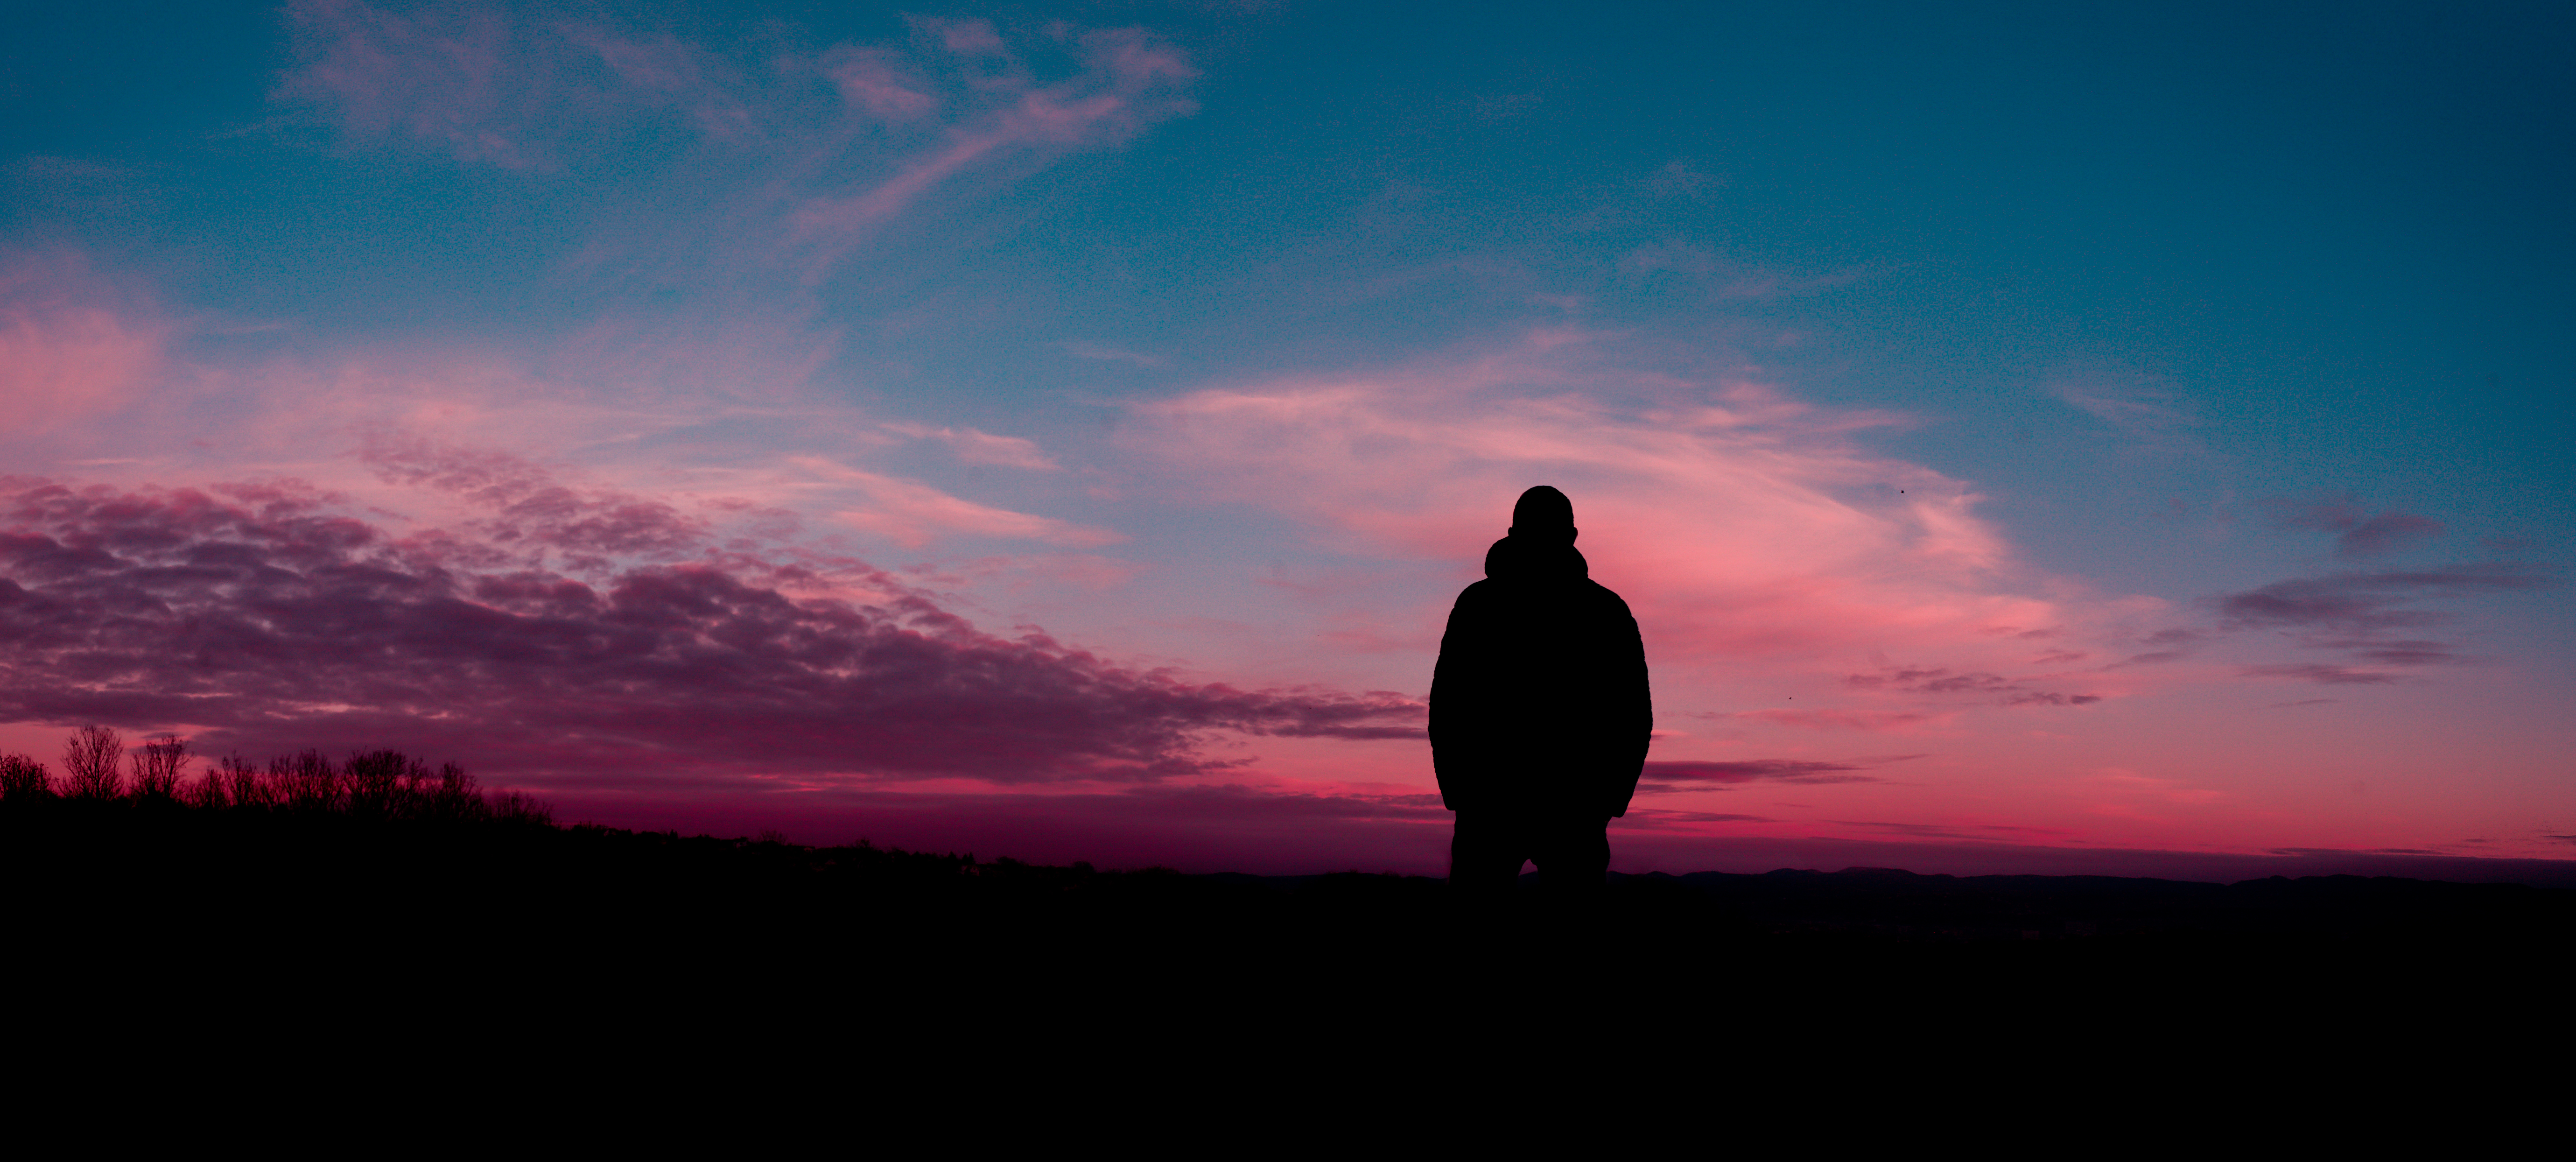 151565 download wallpaper Miscellanea, Miscellaneous, Human, Person, Silhouette, Sky, Night screensavers and pictures for free